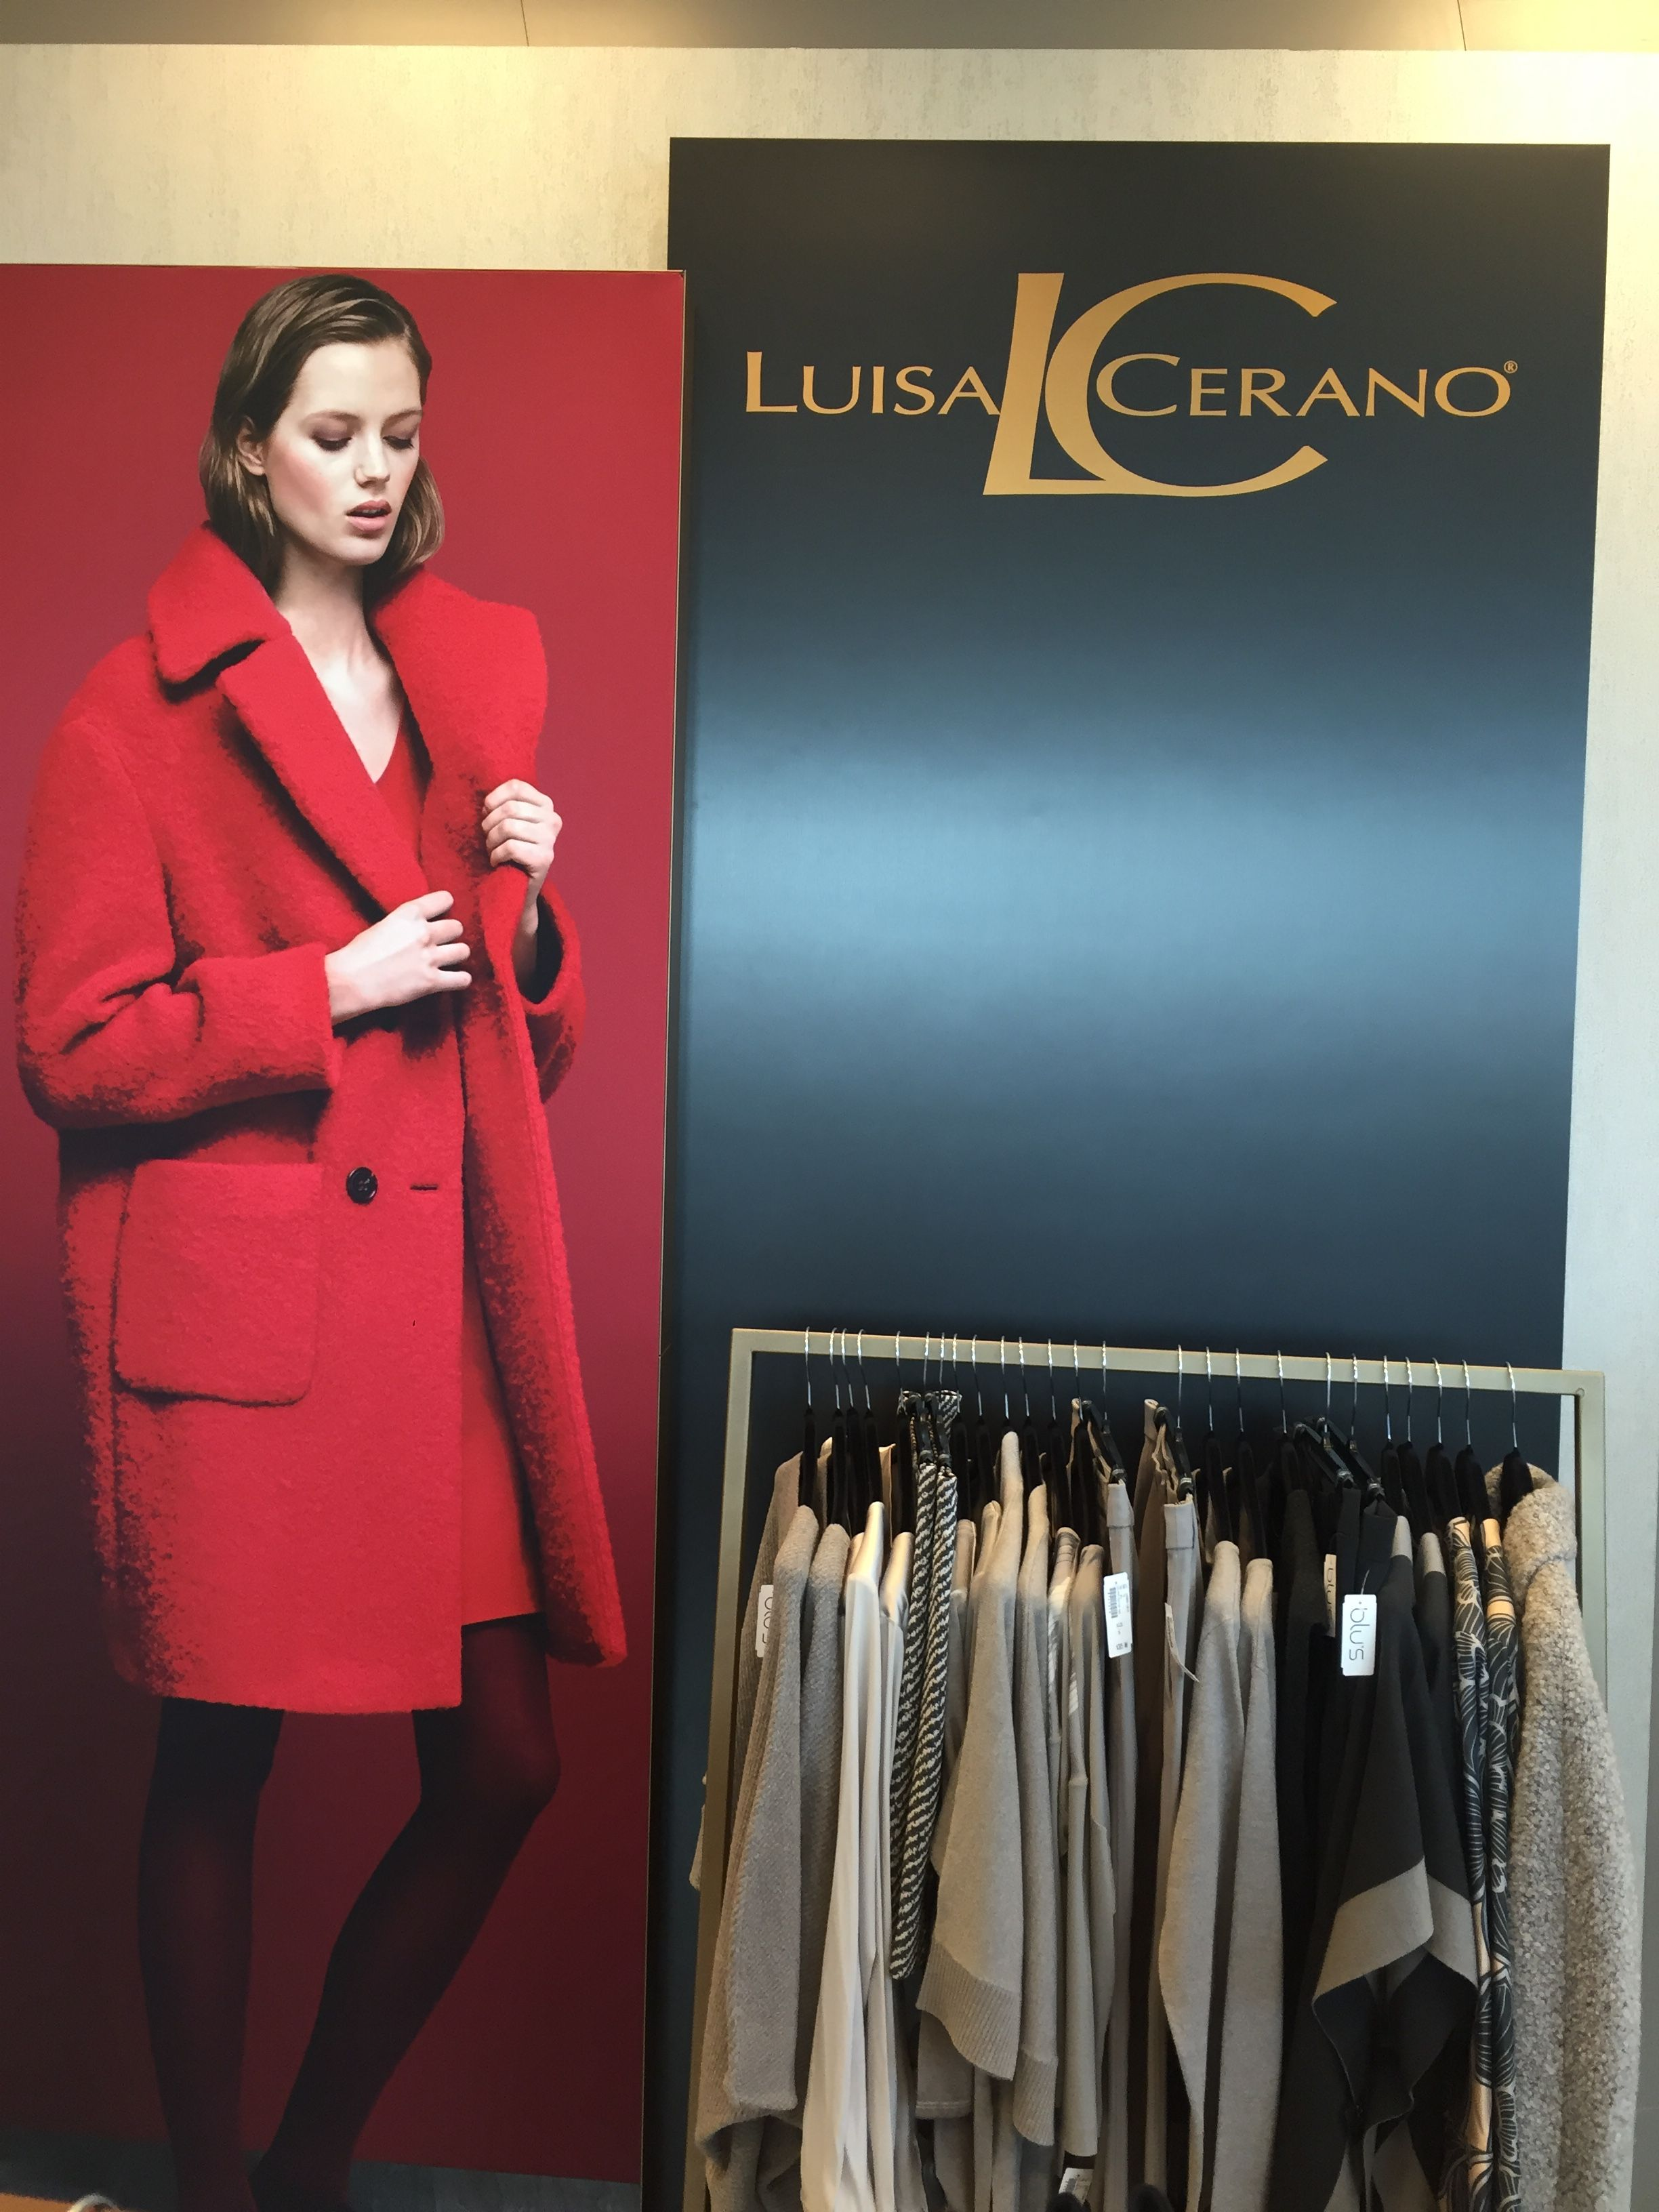 The NEW LUISA CERANO SHOP in SHOP at BLU'S Southgate